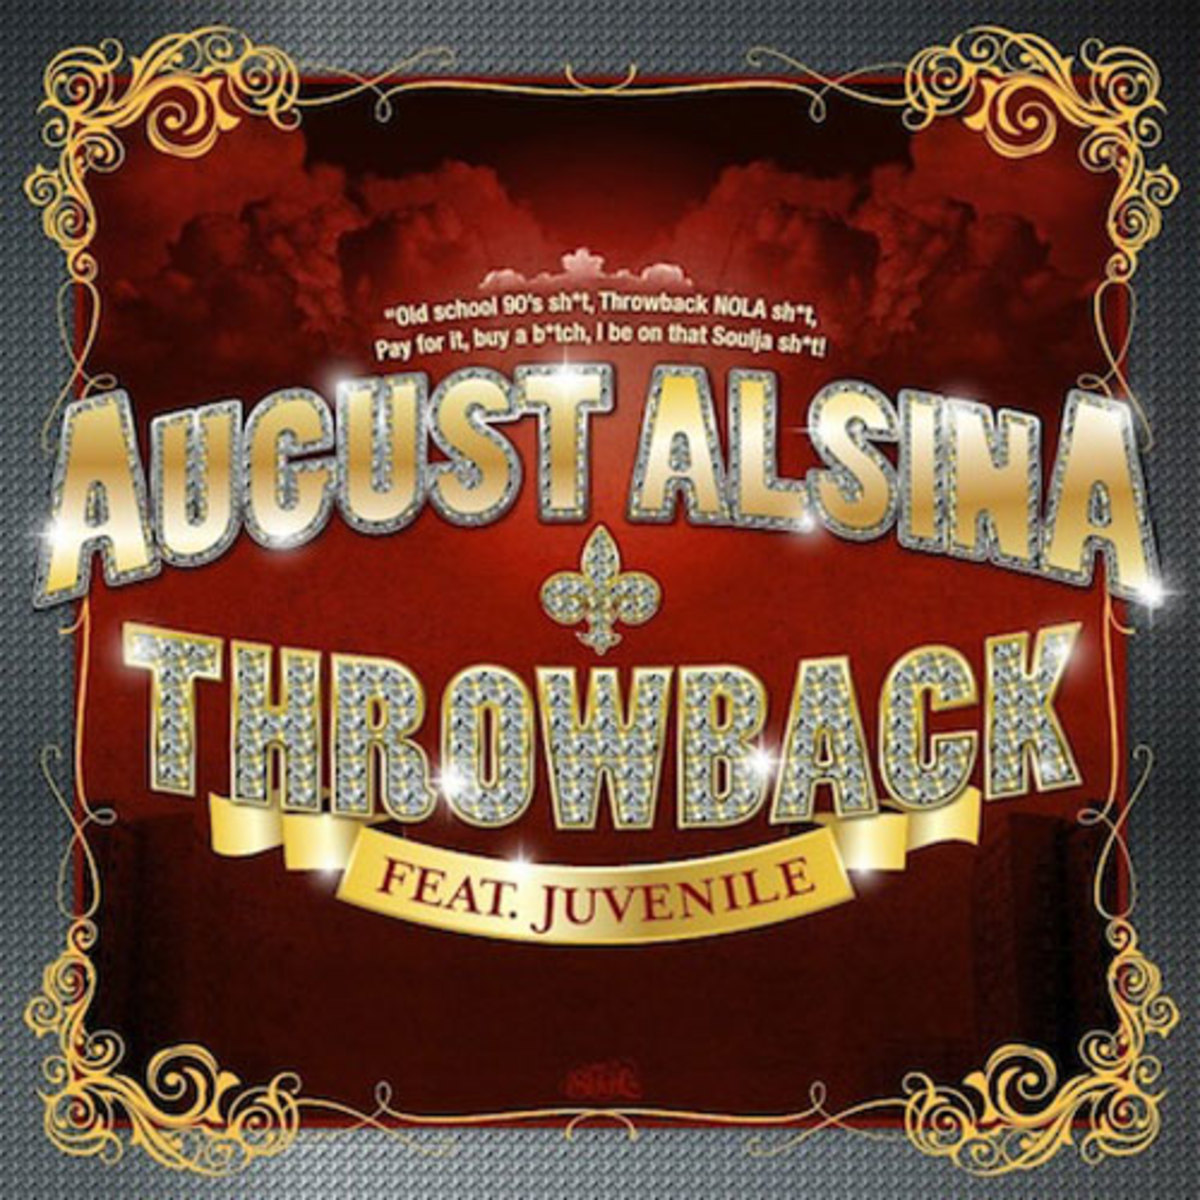 augustalsina-throwback.jpg